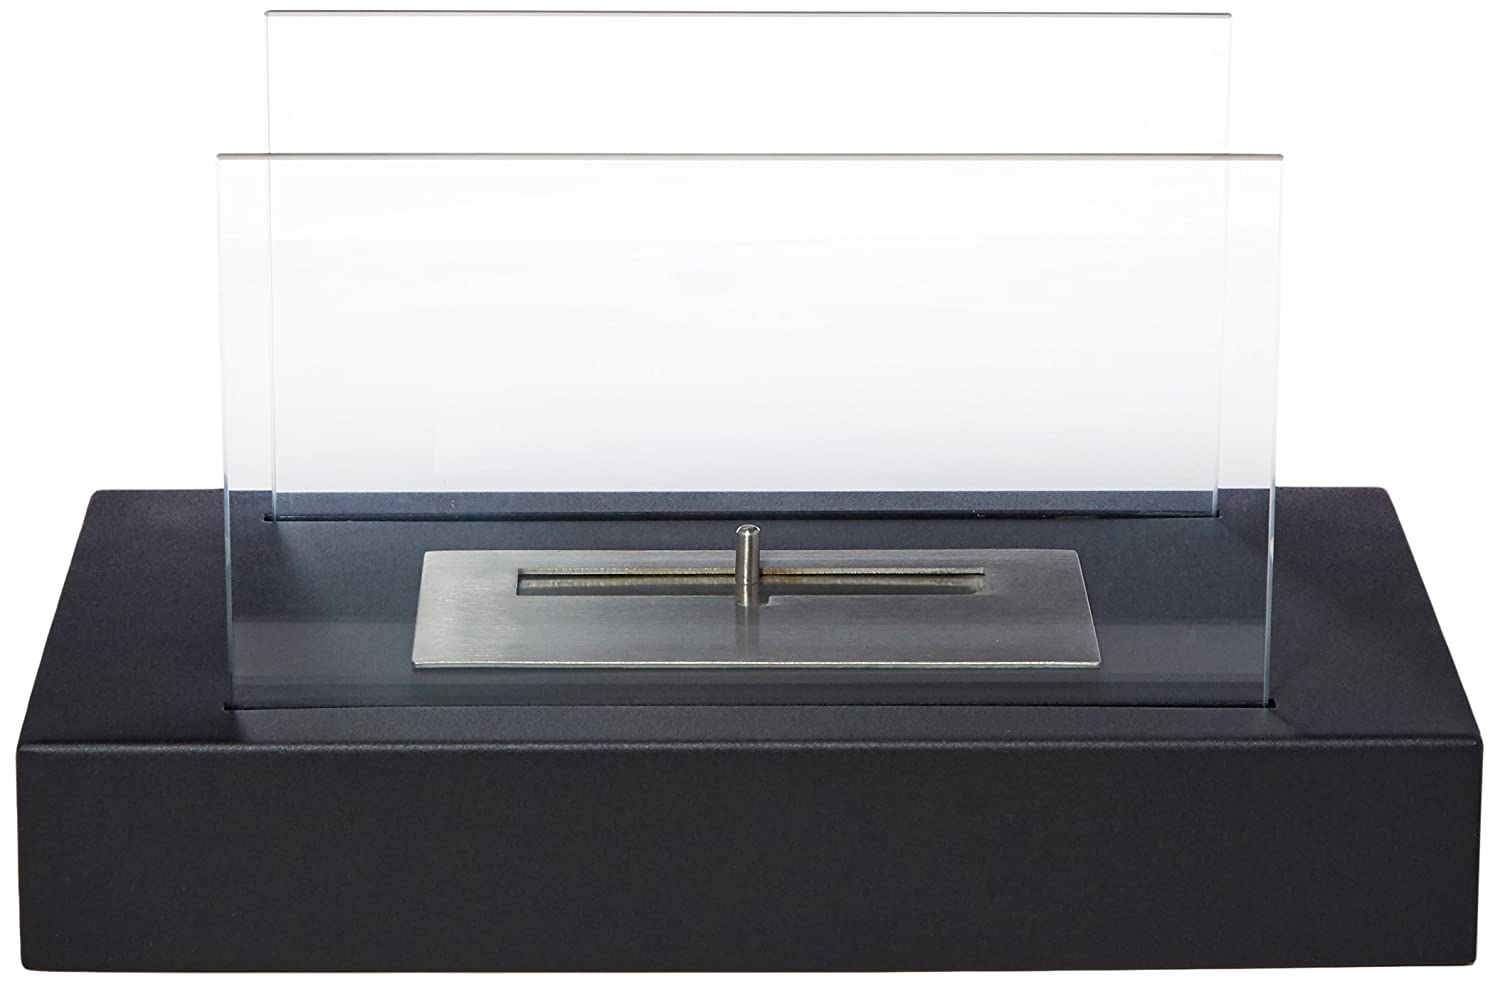 Discover Gel-Fuel Fireplaces on Amazon.com at a great price. Our Fireplaces & Accessories category offers a great selection of Gel-Fuel Fireplaces and more. Free Shipping on Prime eligible orders.